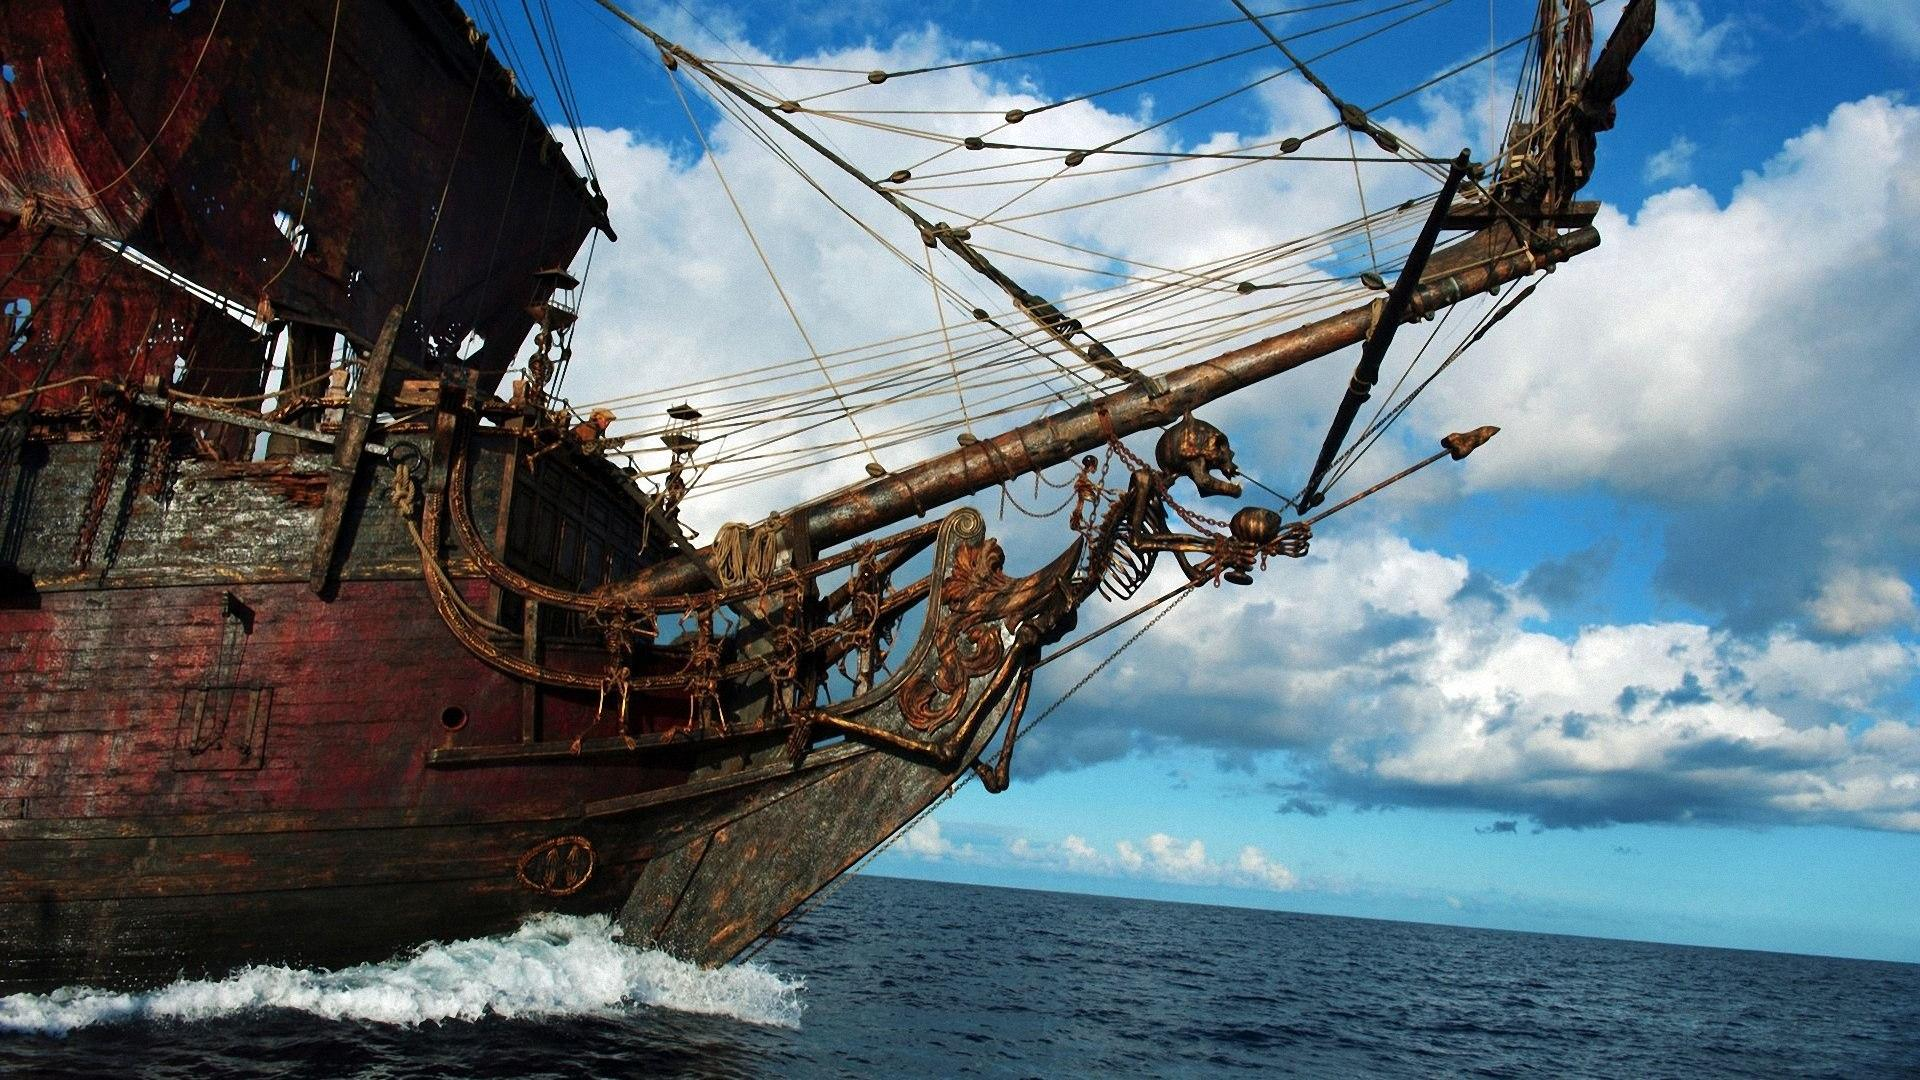 50 pirates of the caribbean 4 wallpaper on wallpapersafari - Pirates of the caribbean wallpaper ...